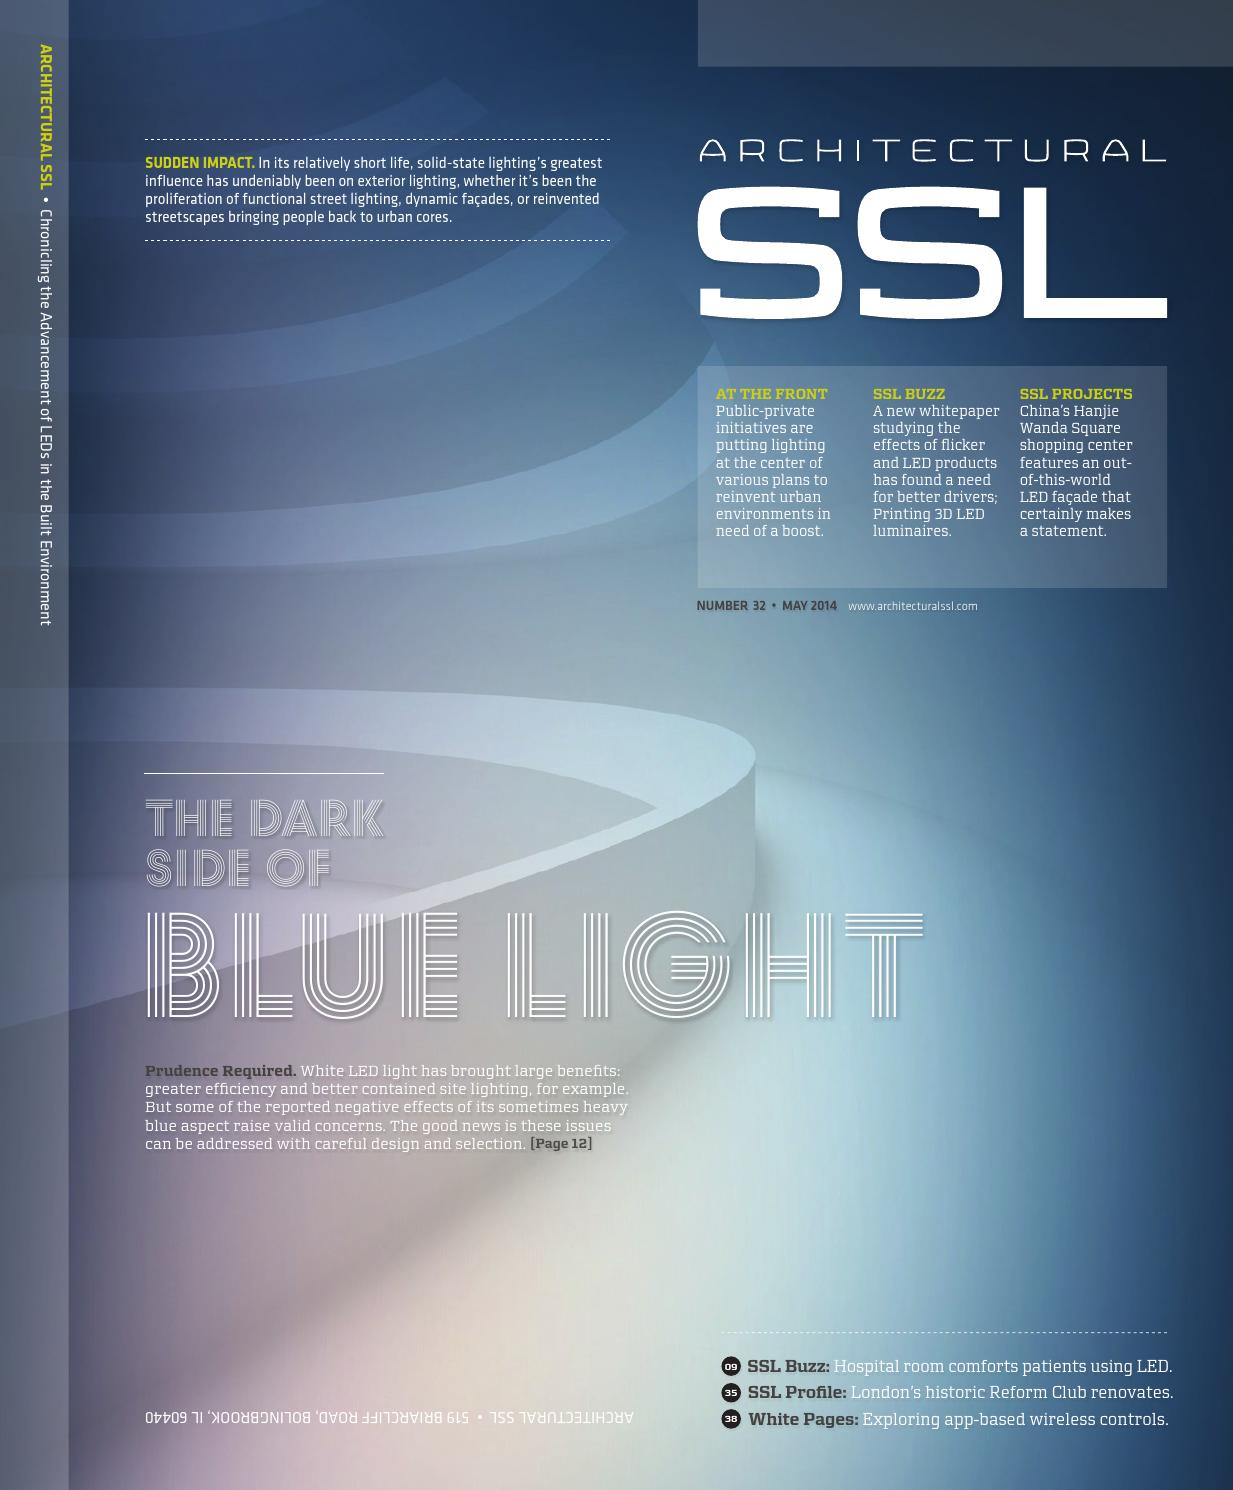 Architectural SSL - May 2014 by Construction Business Media - issuu